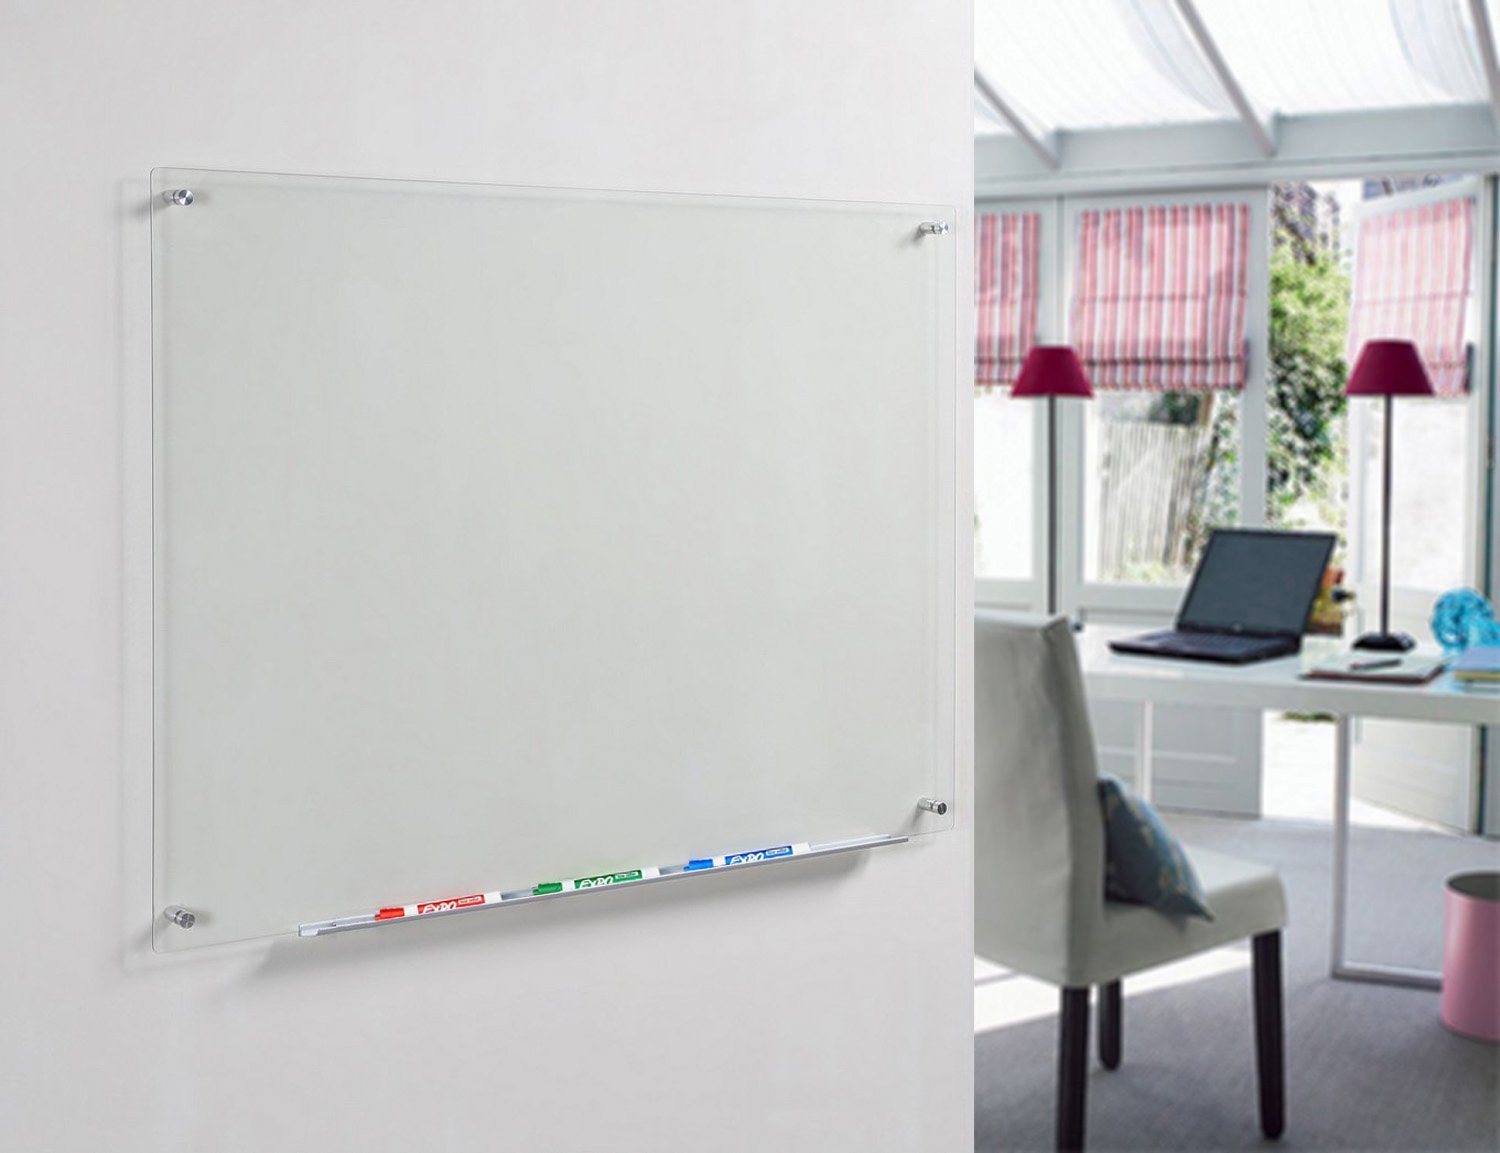 Frosted Glass Dry-Erase Board 60 cm x 90 cm Includes Aluminium MarkerTray